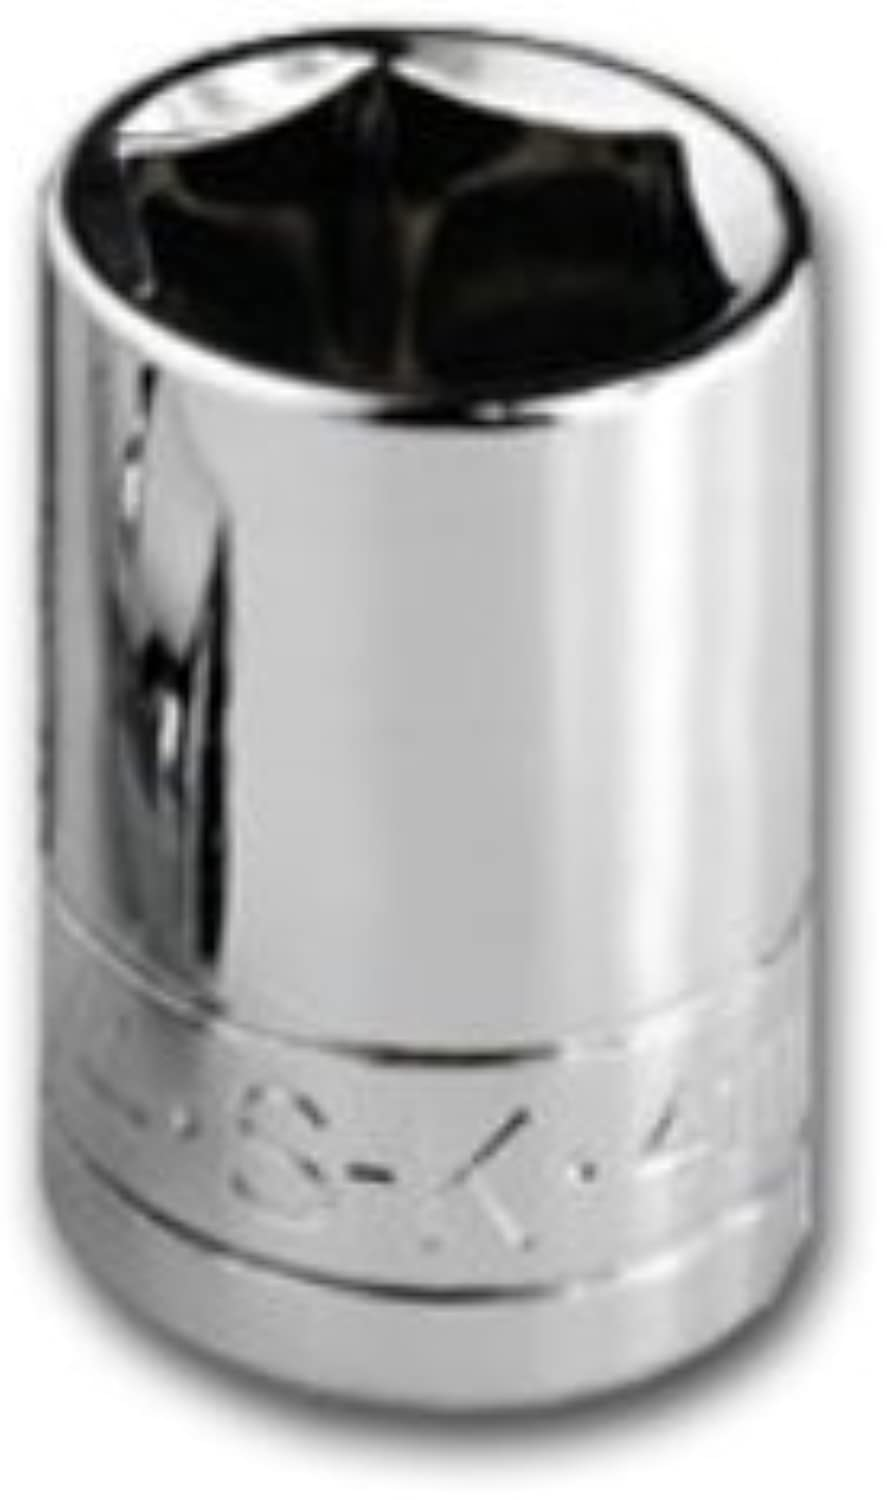 SK Hand Tool 45028 6 6 6 Point 3 8-Inch Drive Standard Socket, 7 8-Inch, Chrome by SK Hand Tool B01N44G871 | Spezielle Funktion  f0a727